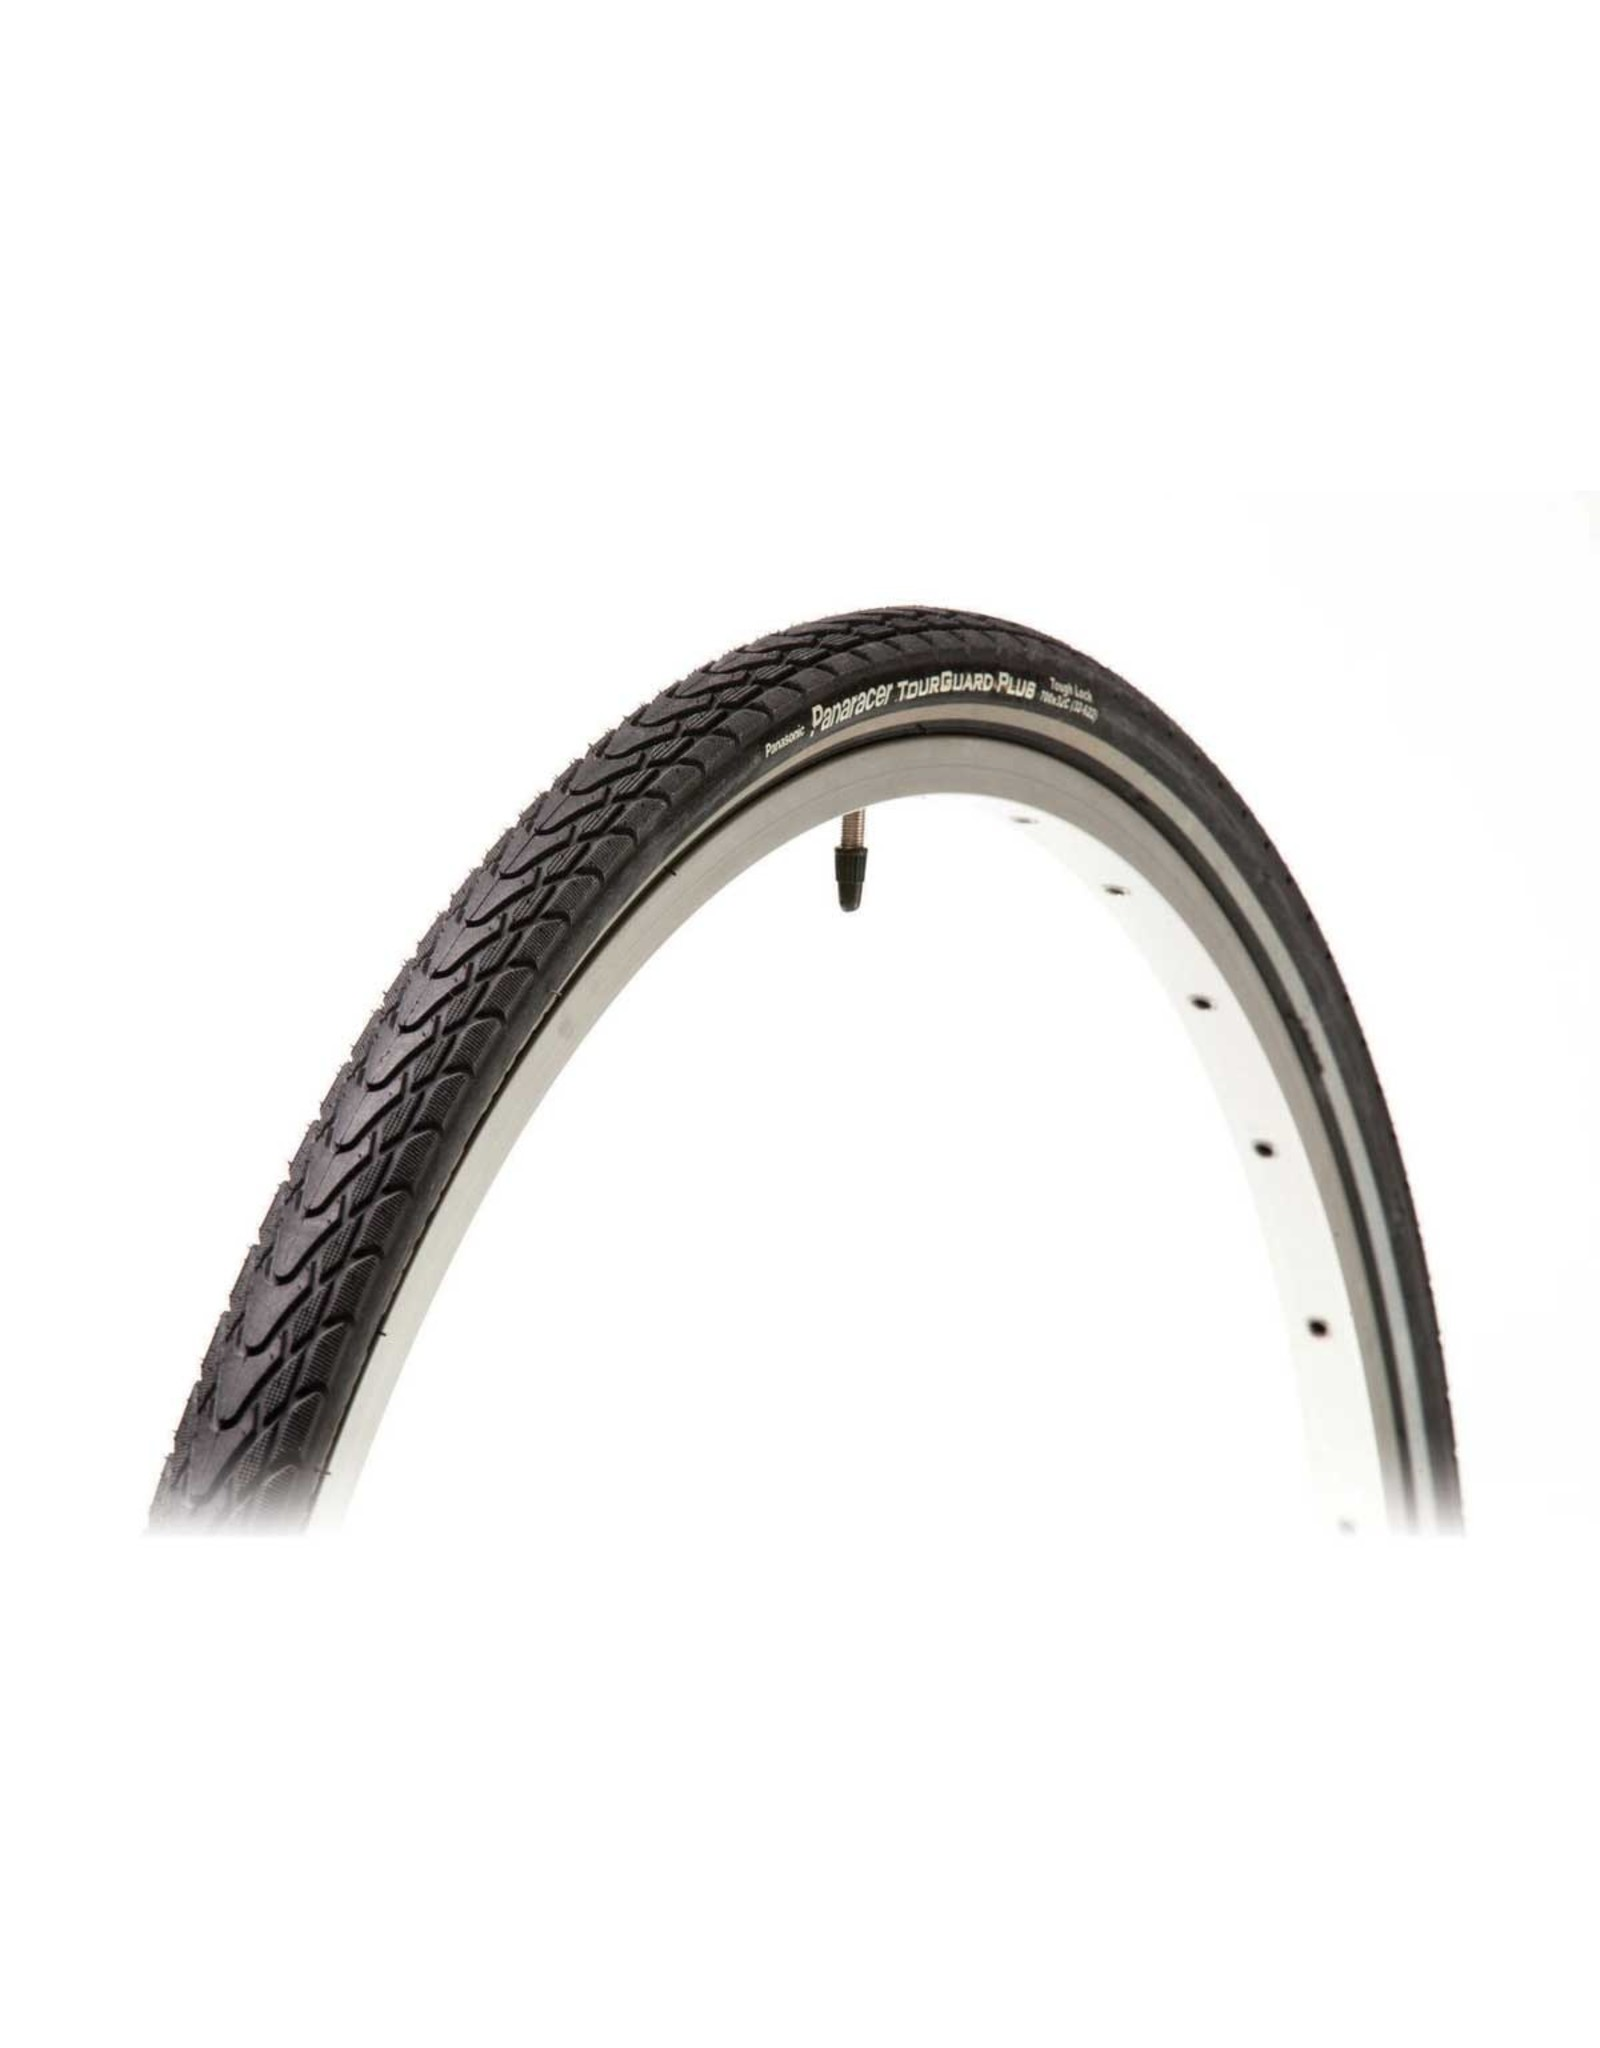 Panaracer Tyre Tour Guard Plus 700 x 32